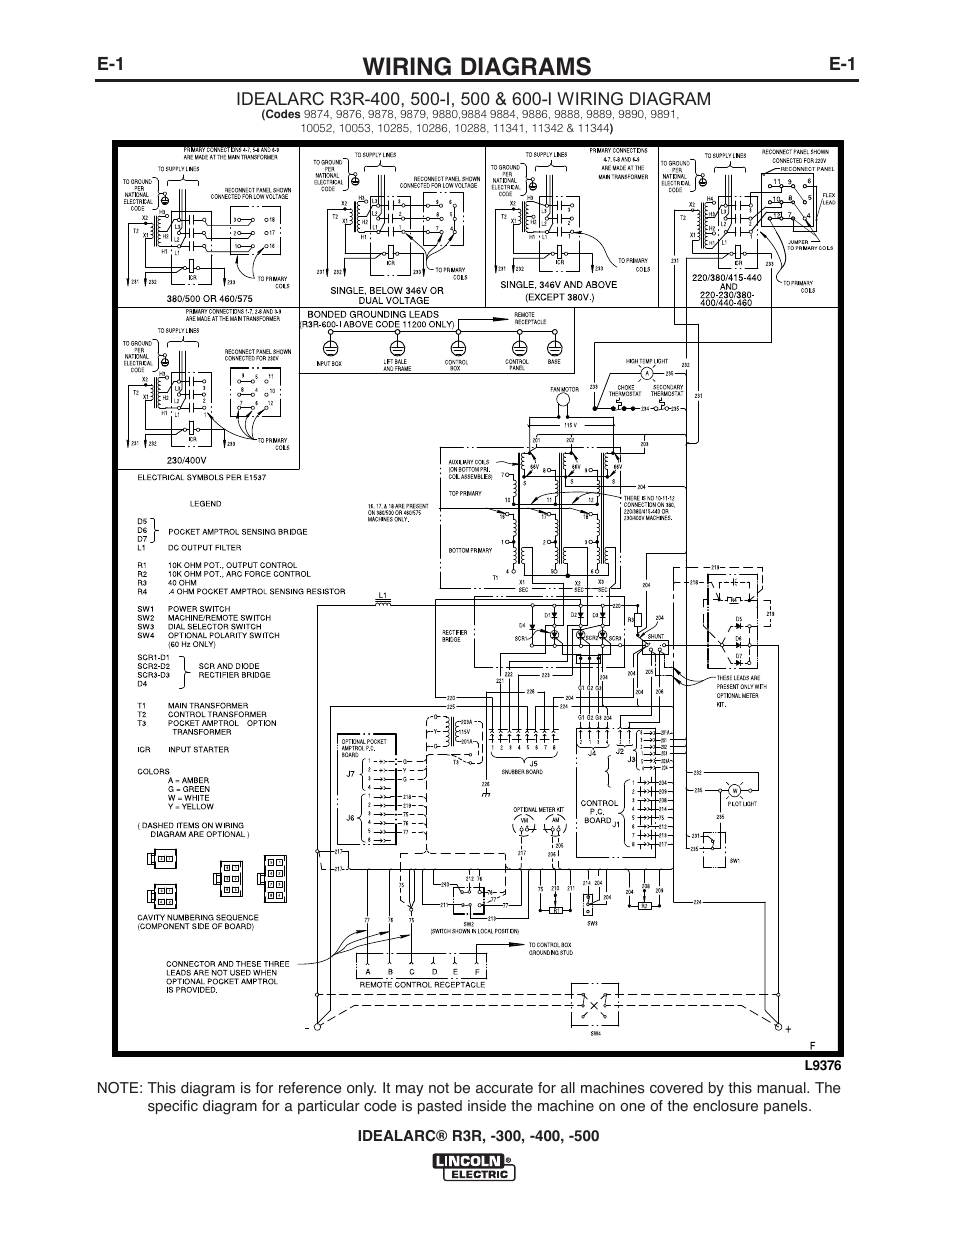 Wiring       diagrams      Lincoln Electric IM409 IDEALARC R3R400 User Manual   Page 23  32